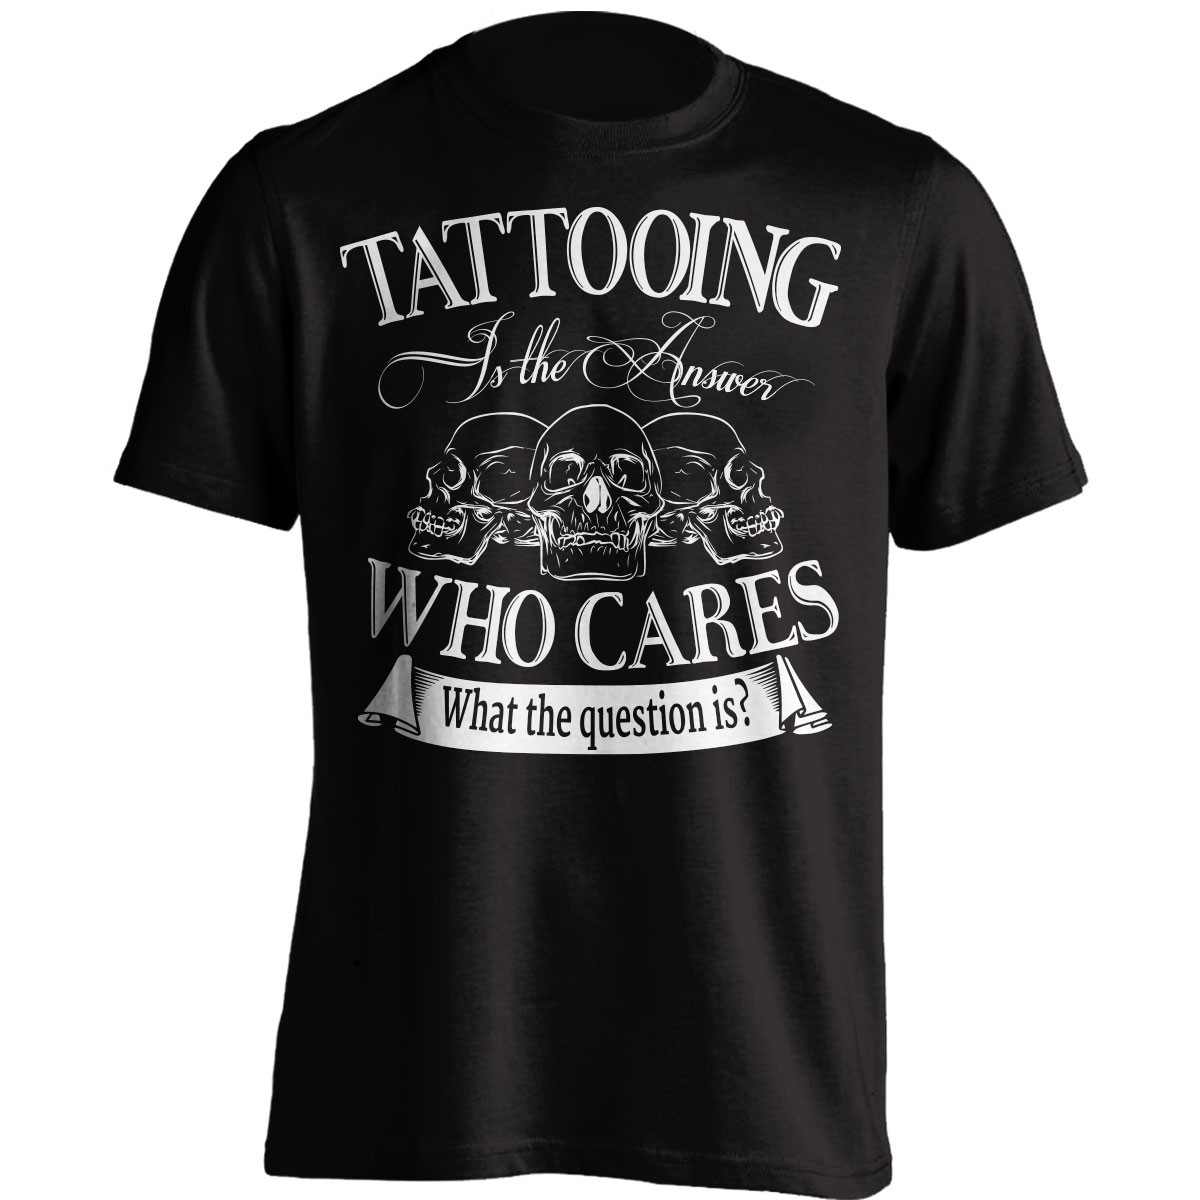 Tattooing Is The Answer T-Shirt